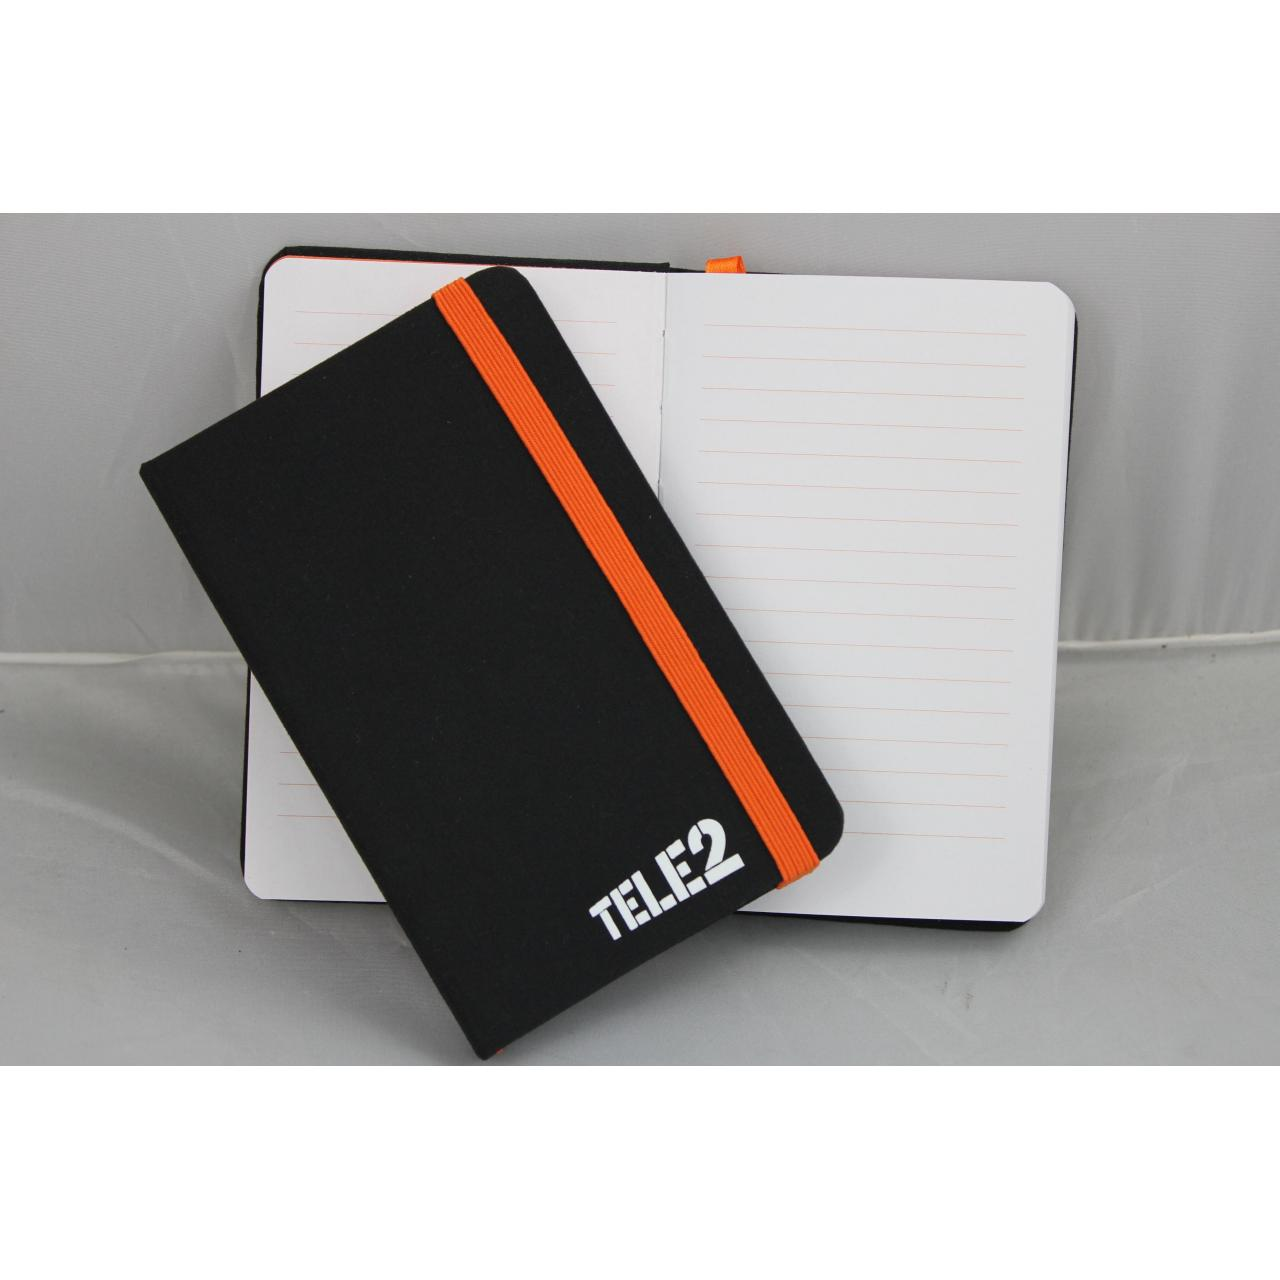 cheap paper notebooks for students Notebooks & notepads: buy cheap notebooks and notepads online from the works up to 80% off memo pads, notebooks, refill pads and writing paper.